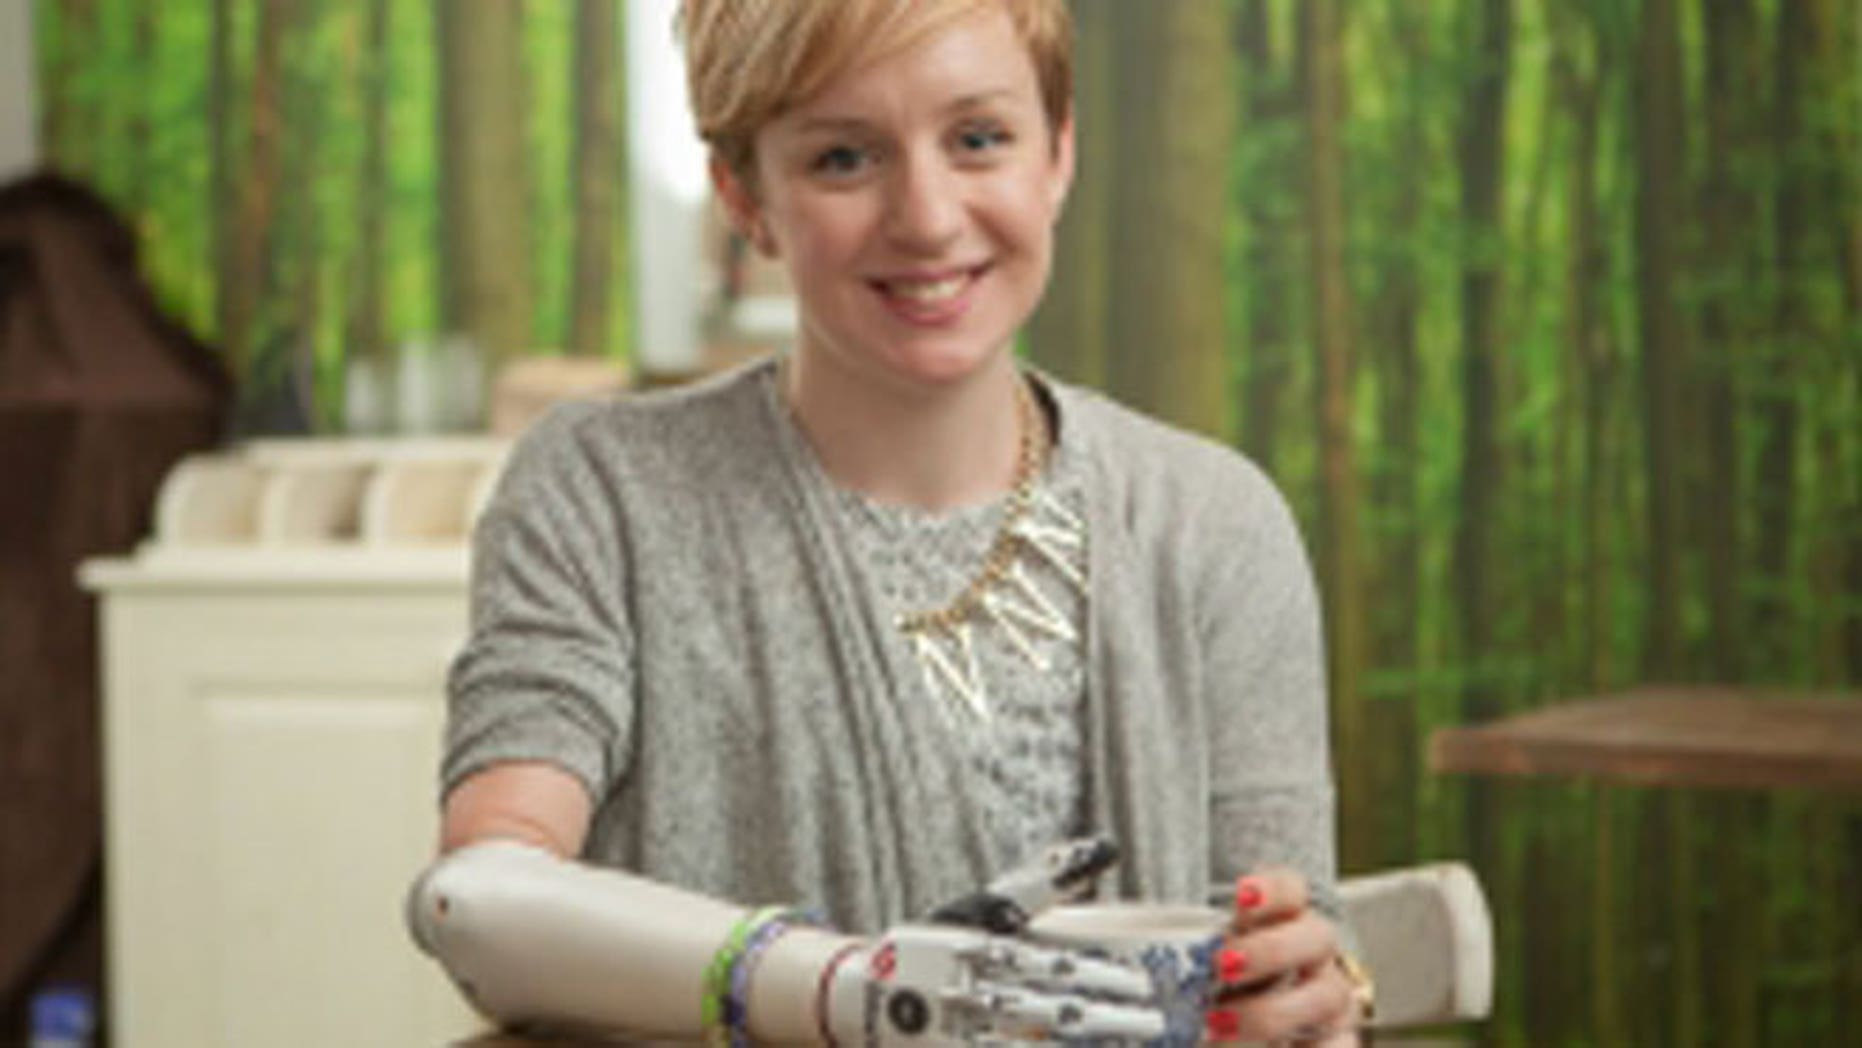 Nicky Ashwell, 29, was the first person in the United Kingdom to be fitted with the bebionic small hand.